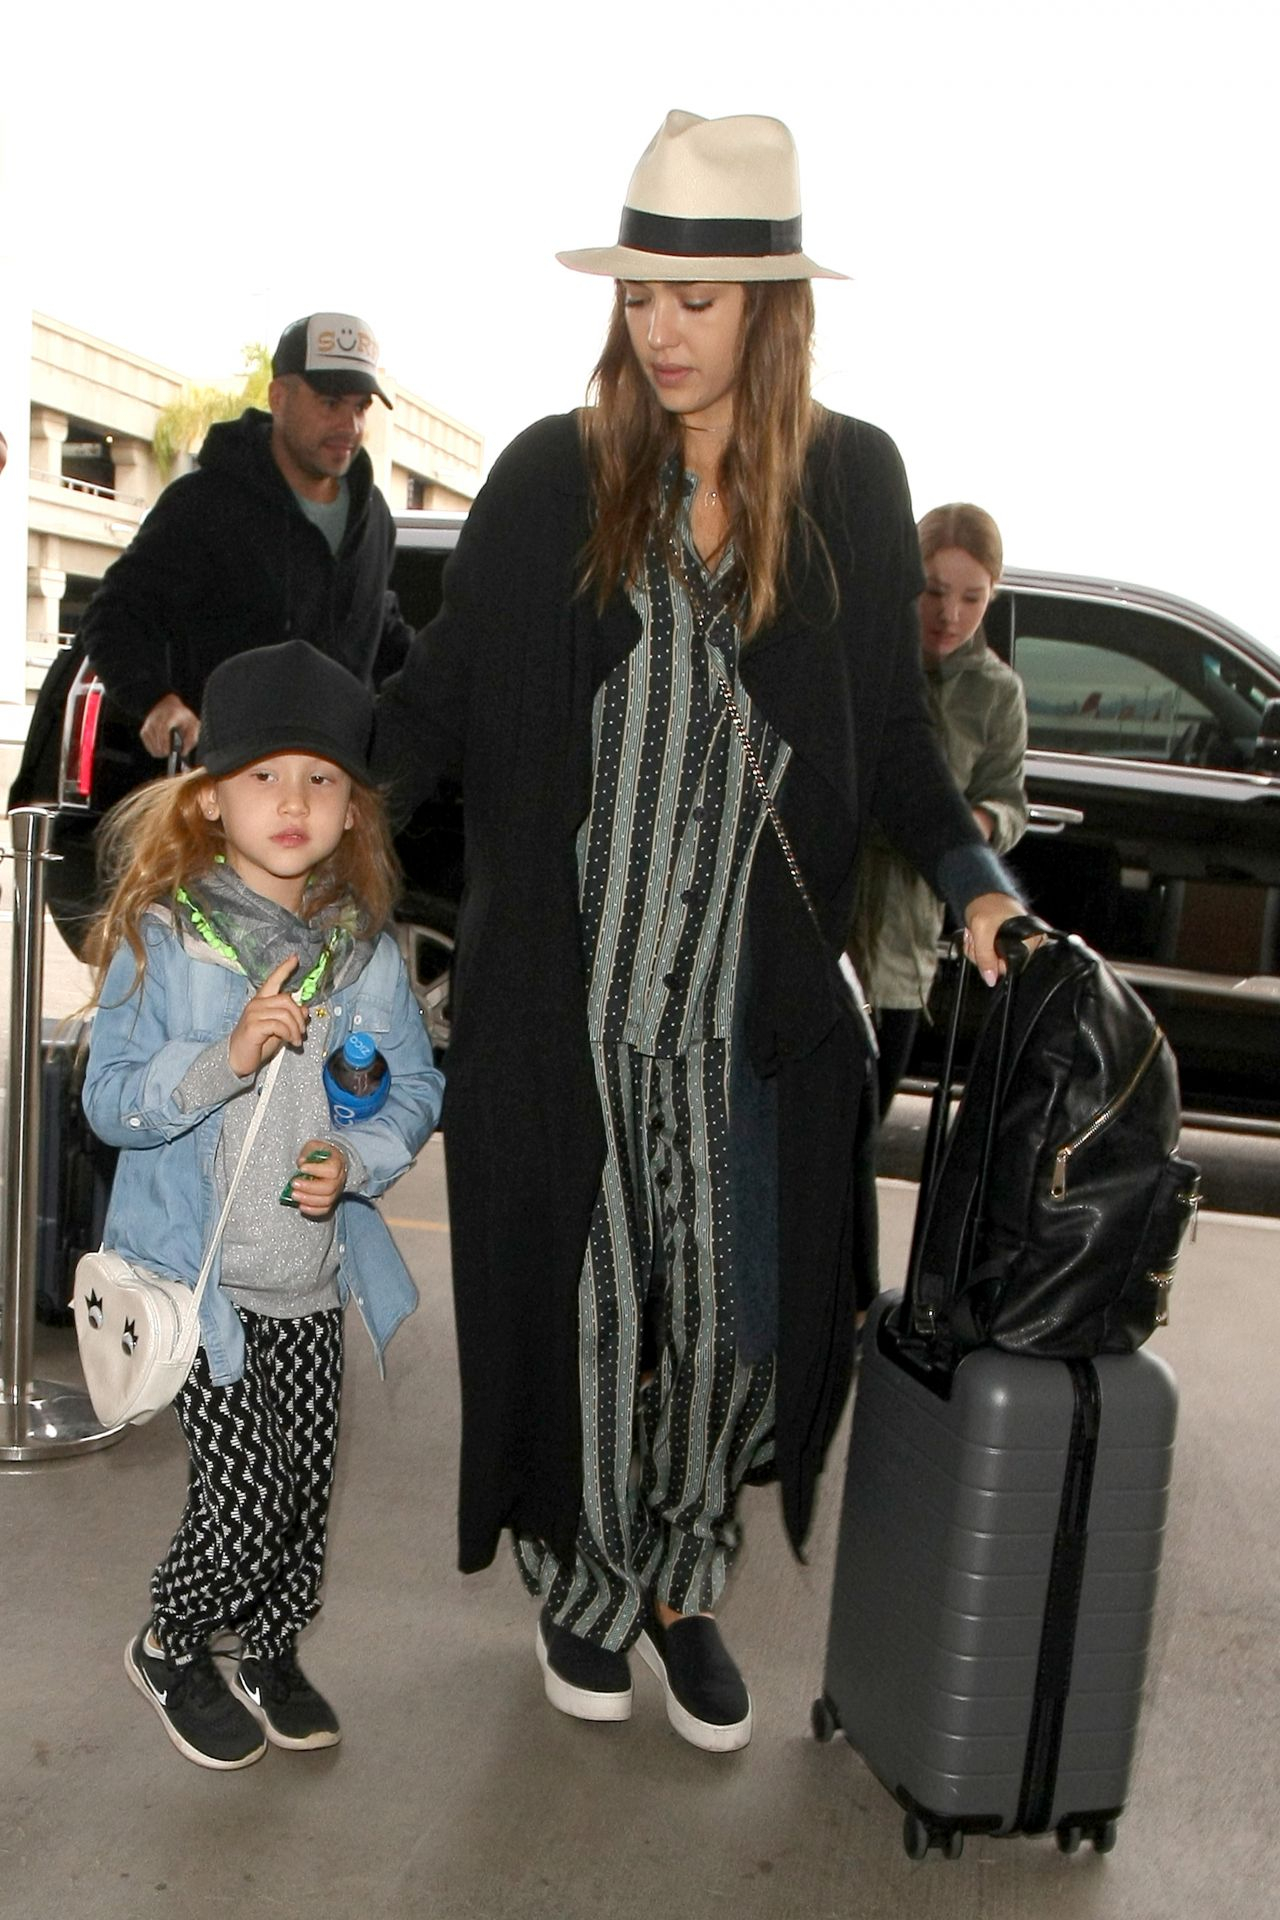 http://celebmafia.com/wp-content/uploads/2016/12/jessica-alba-arrives-at-lax-airport-in-los-angeles-12-26-2016-7.jpg